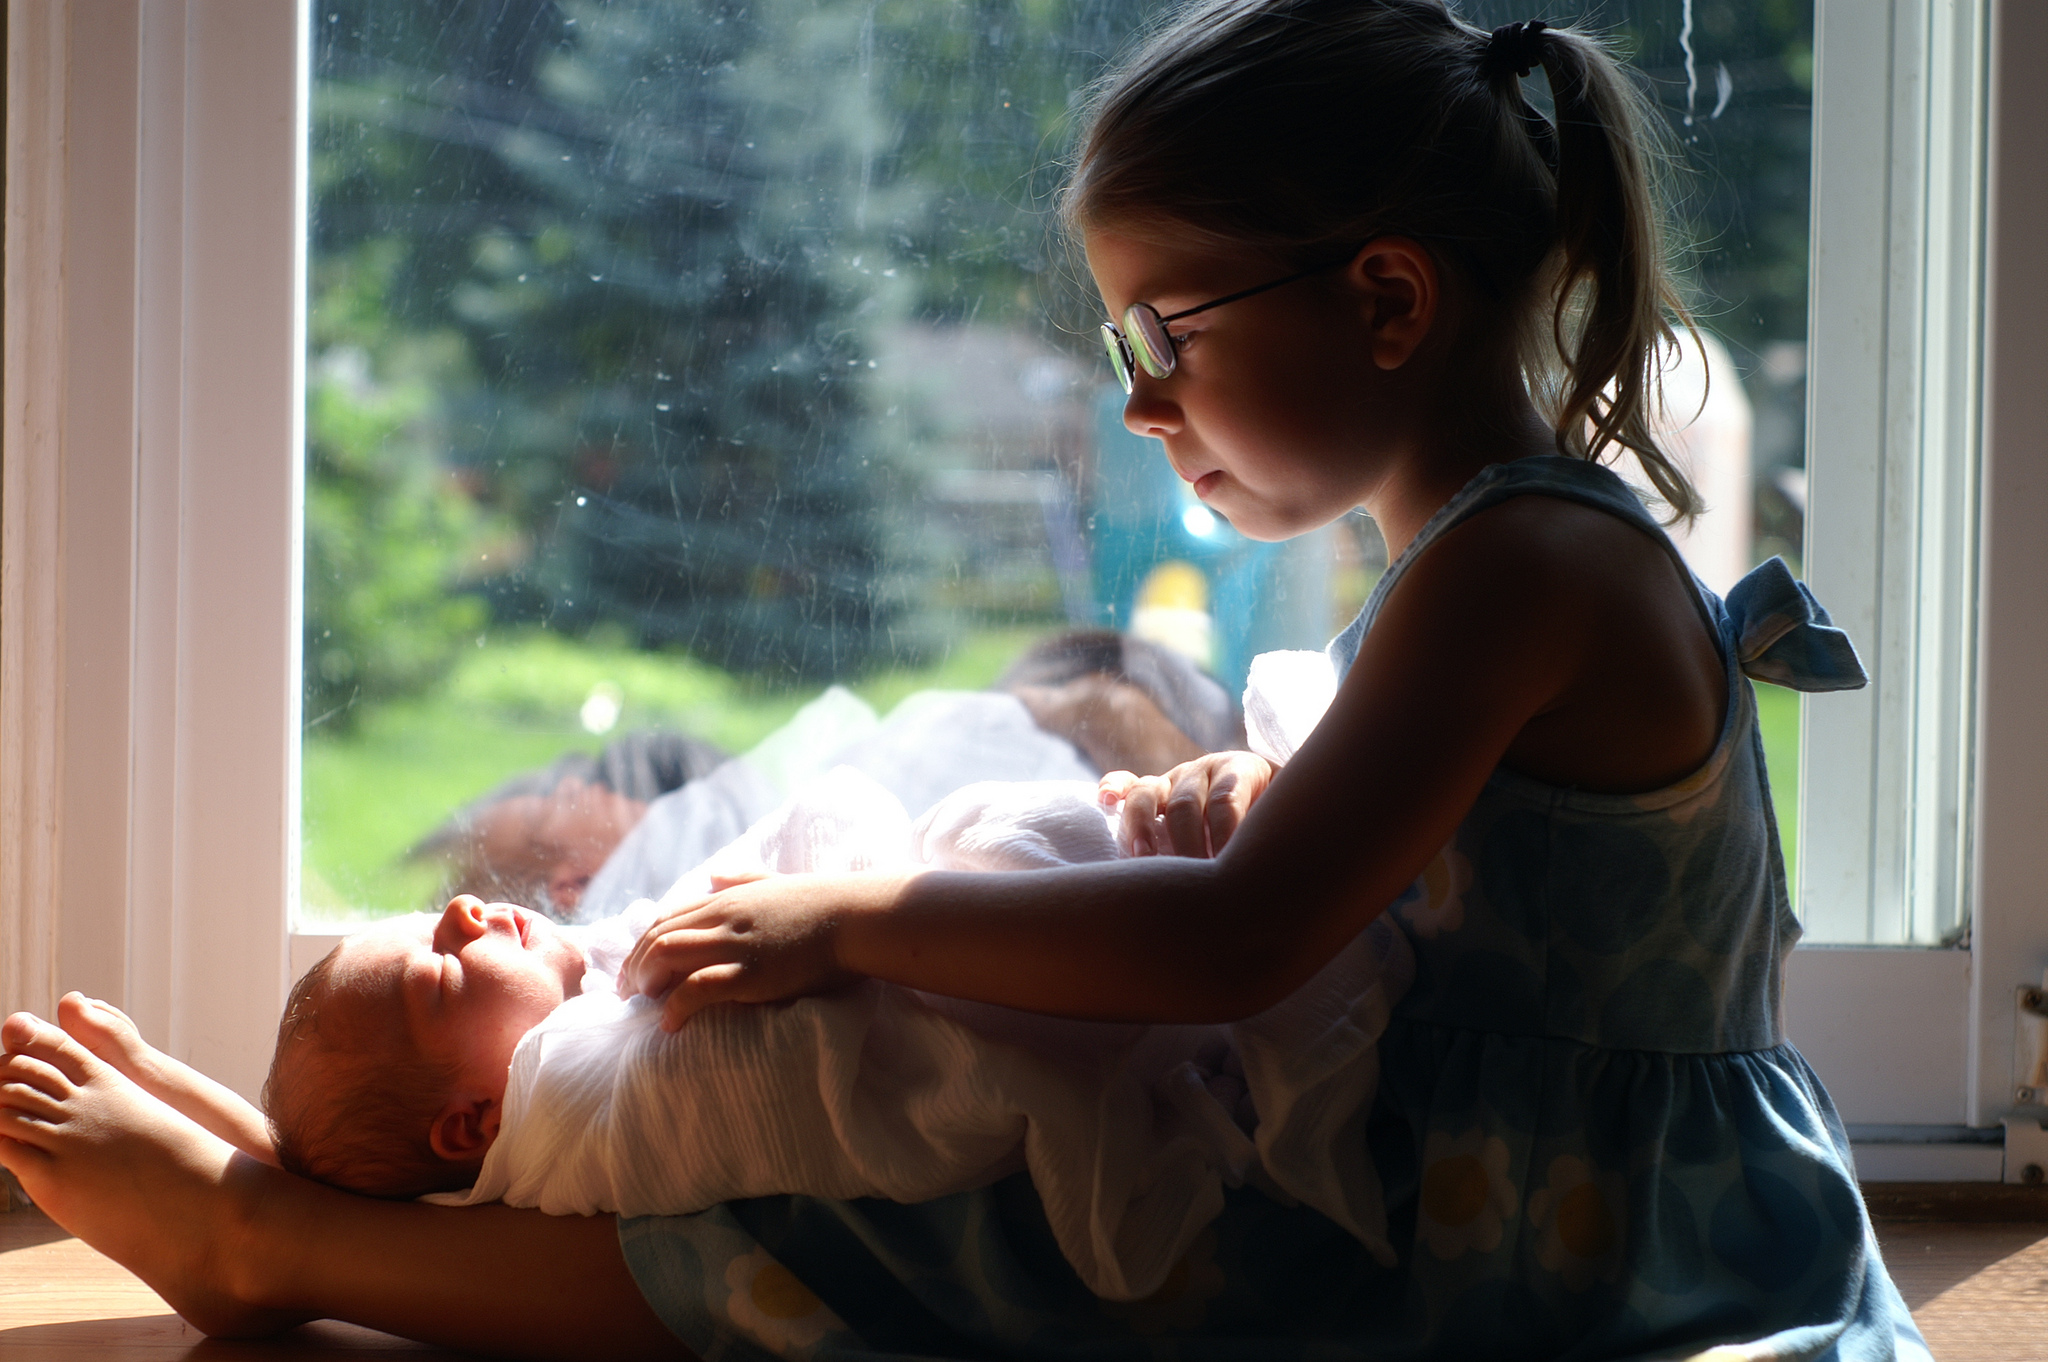 Imitation is my art: Sibling photography in natural light